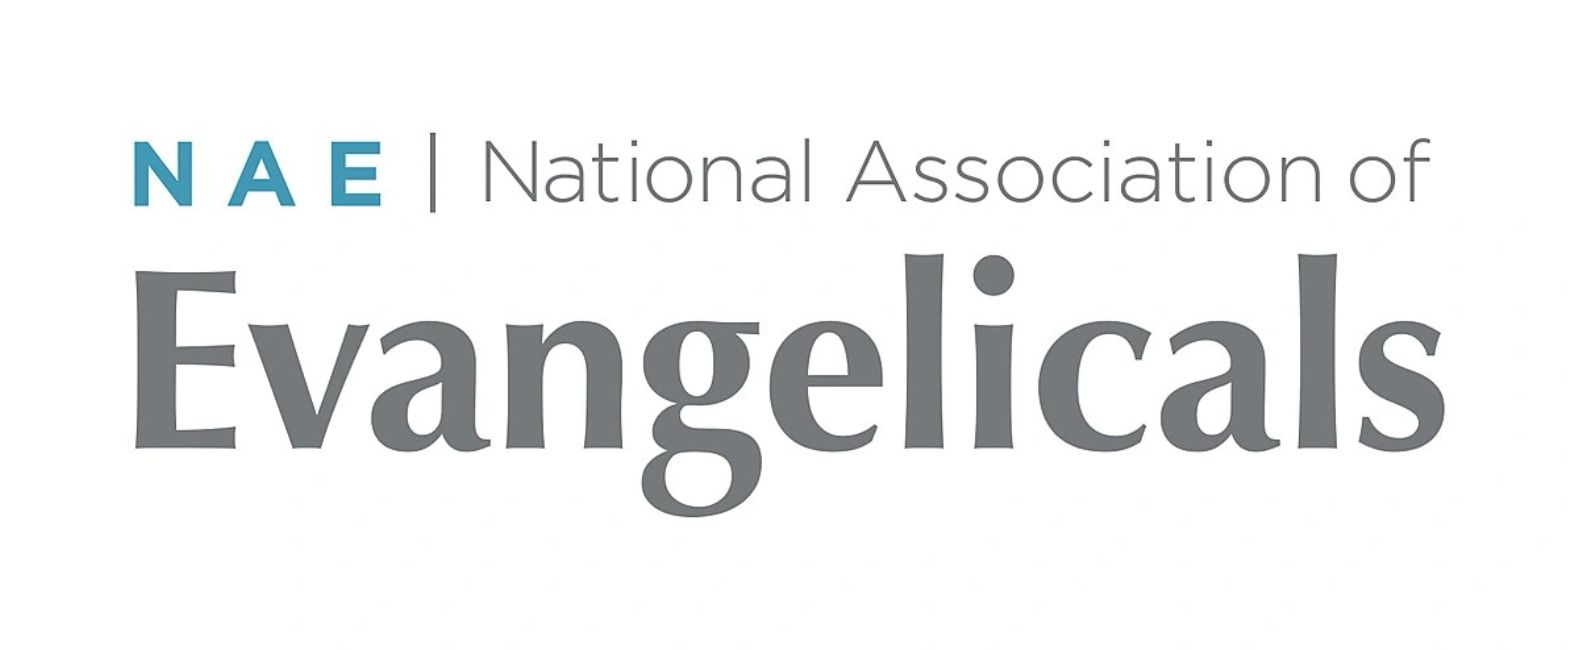 The National Association of Evangelicals